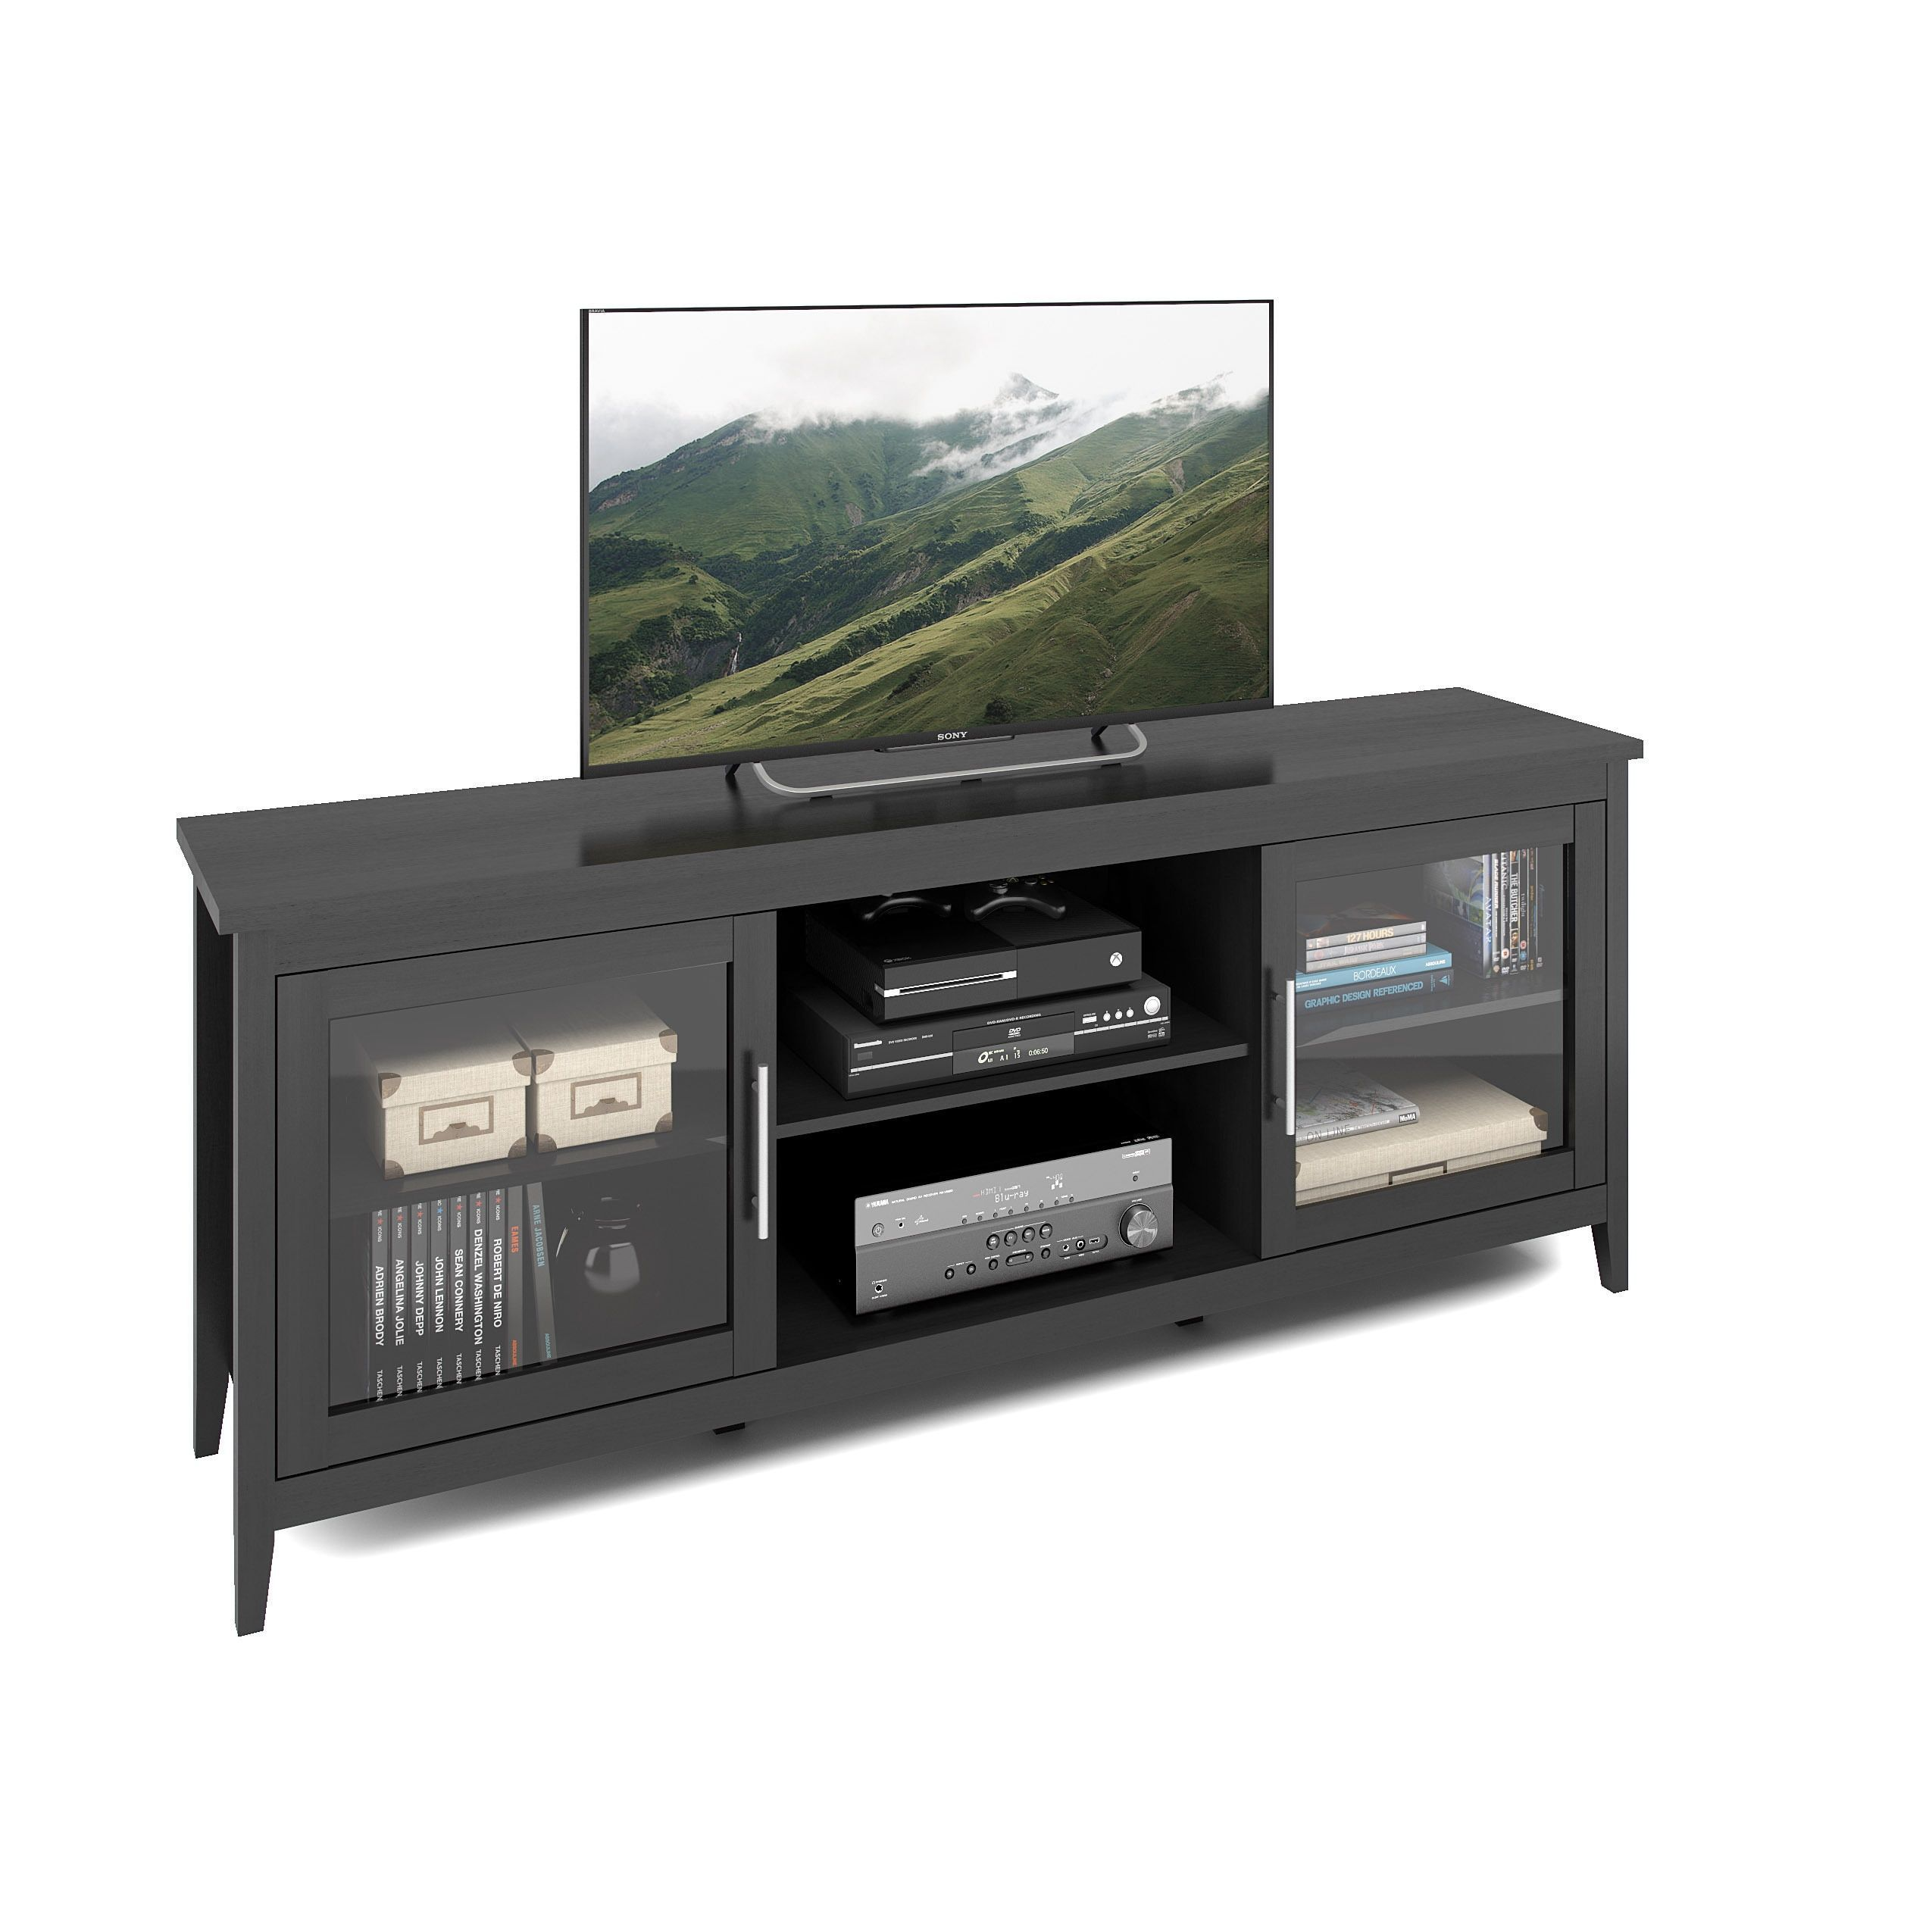 Corliving Tfp 684 B Jackson 71 Inch Extra Wide Tv Bench For Tvs Up